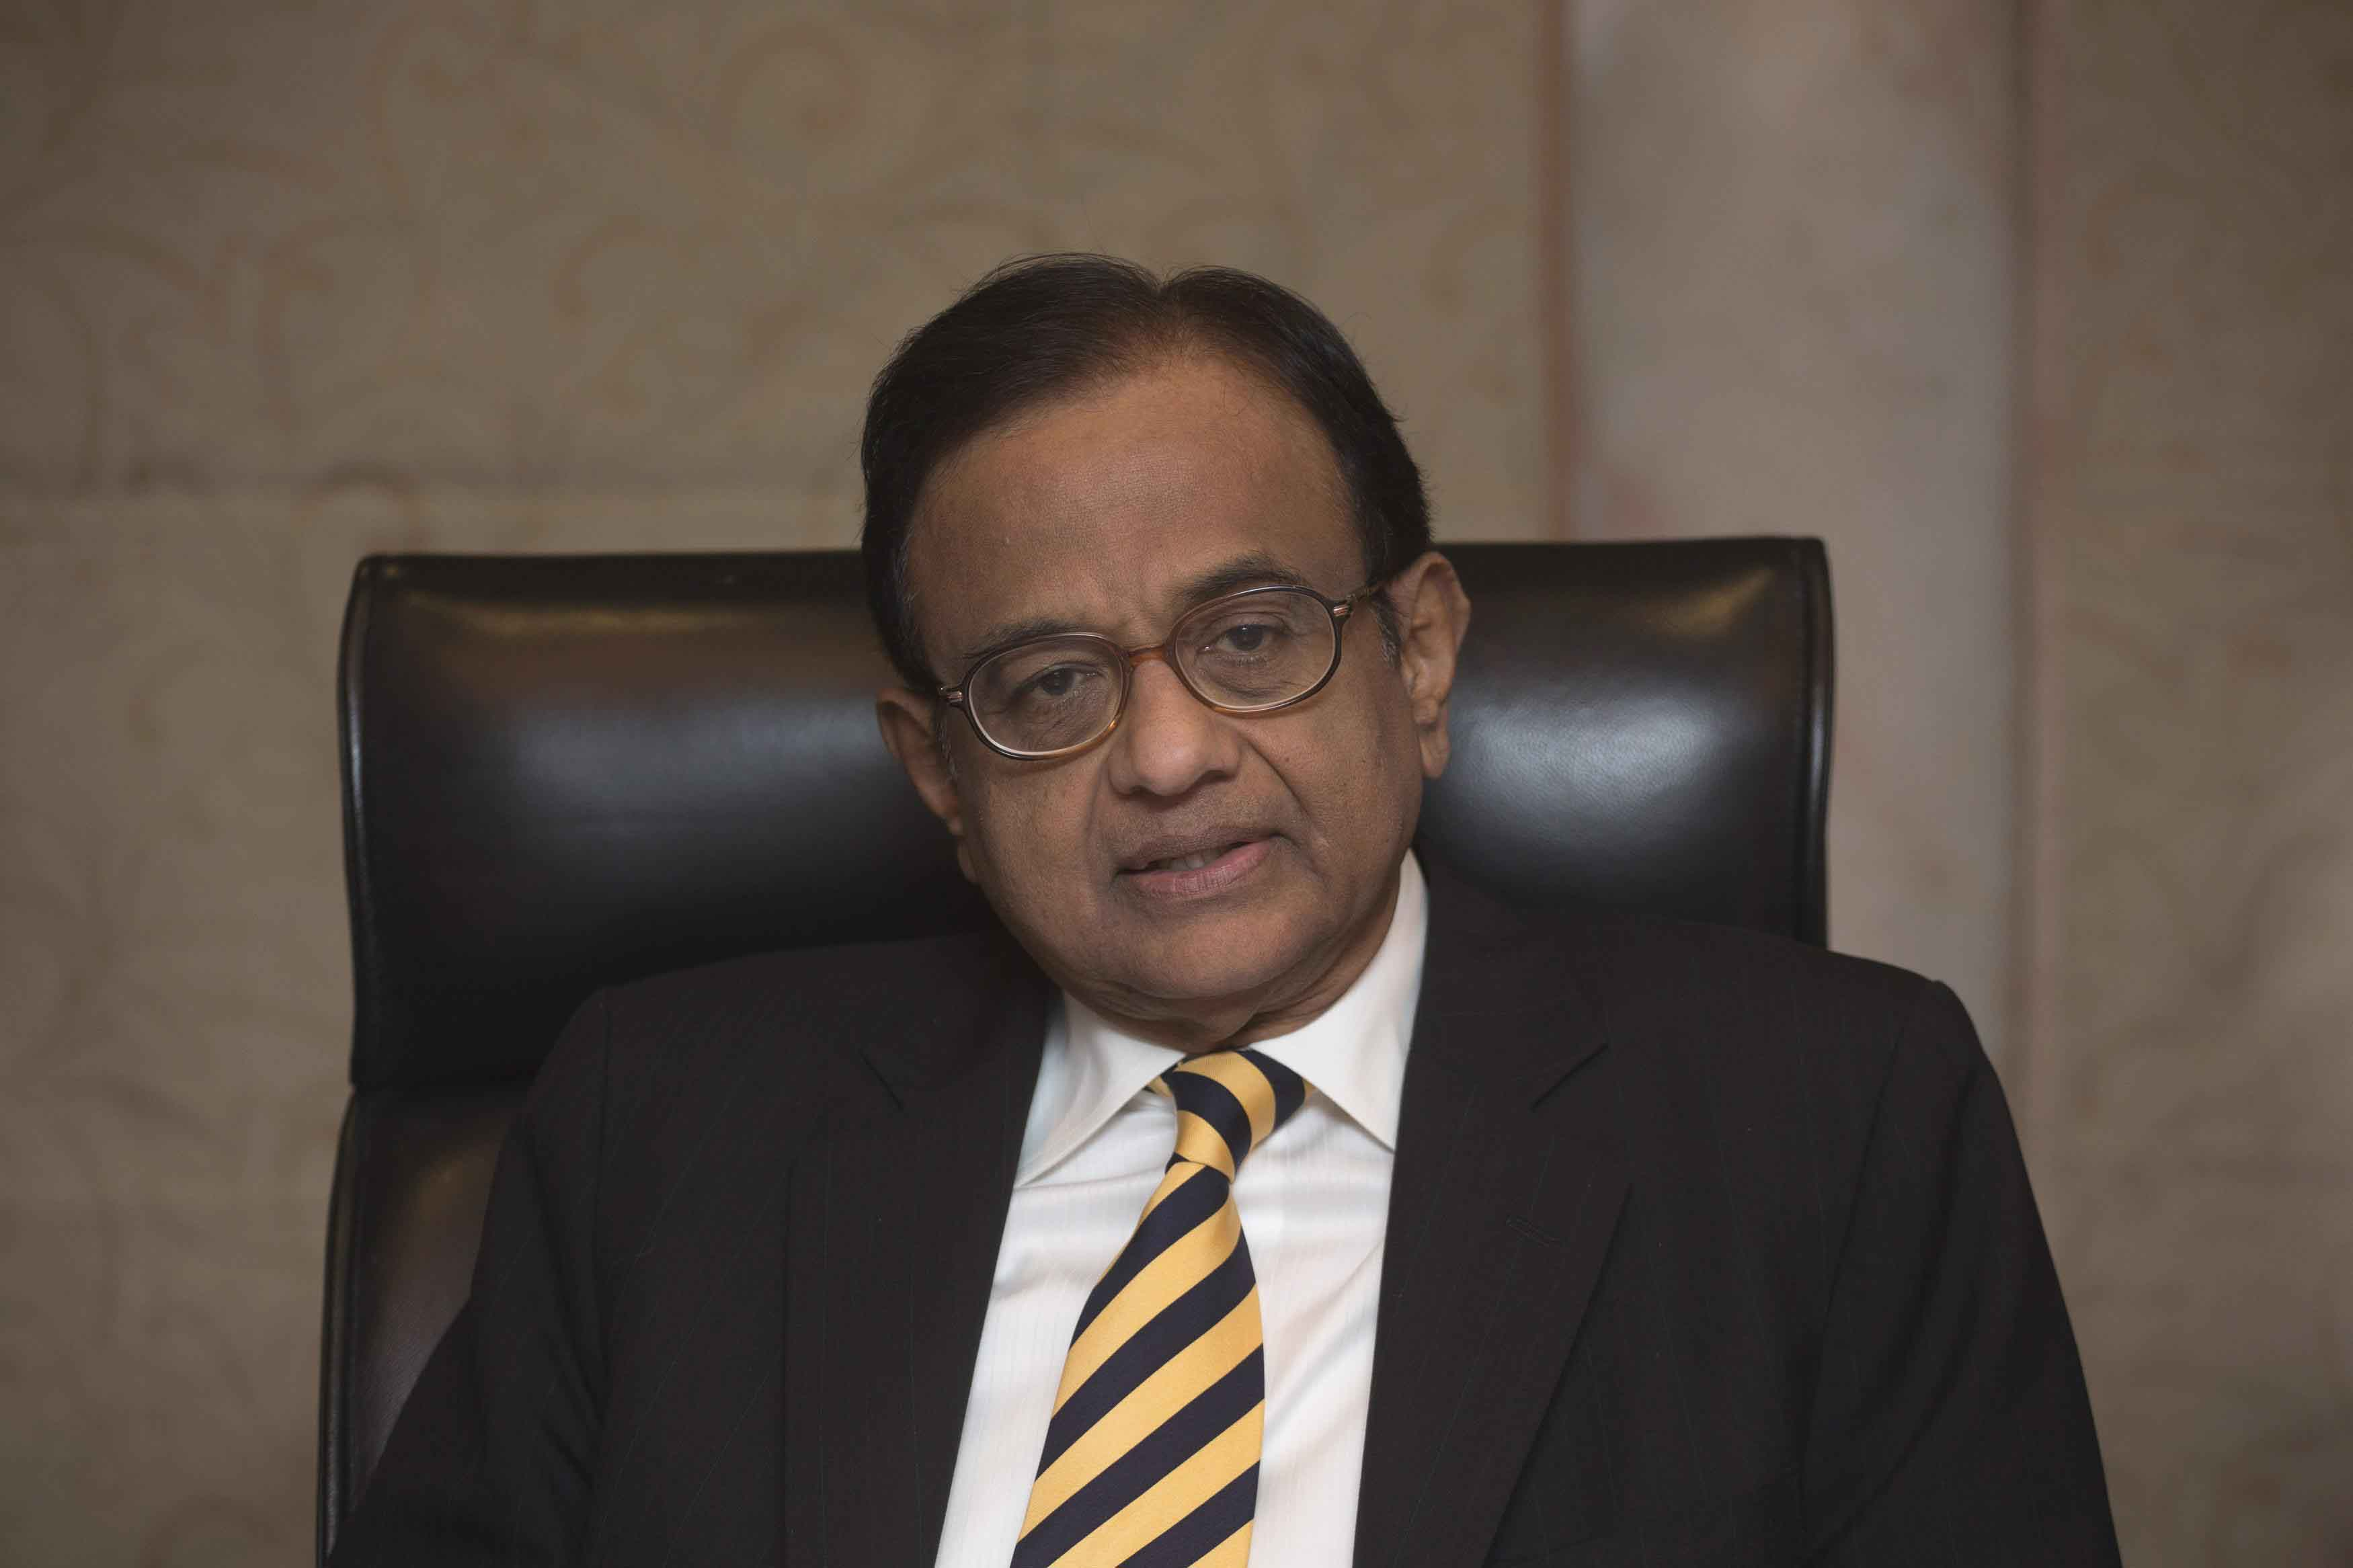 chidambaram says kashmir is nearly los